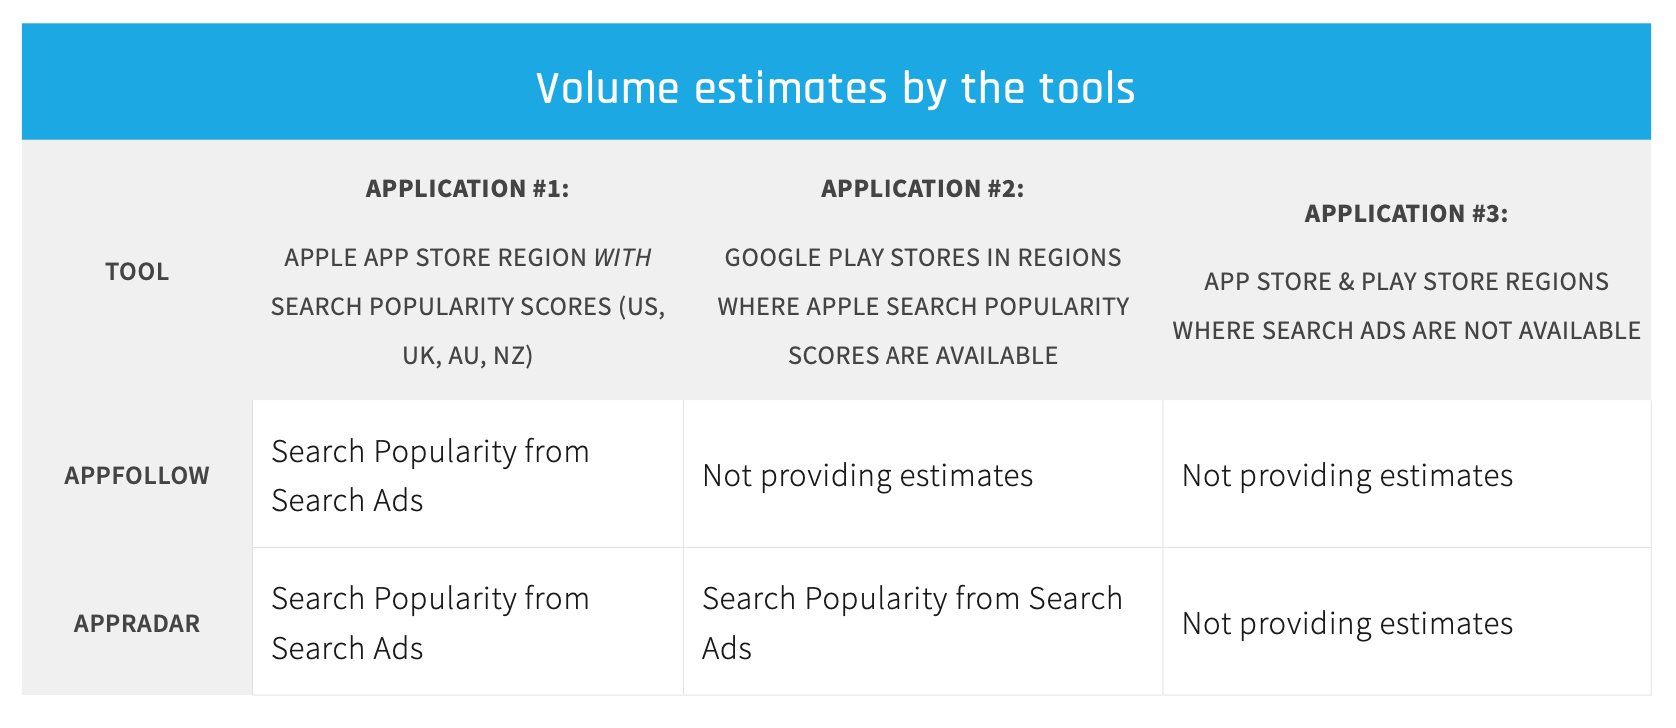 Volume estimates by the tools